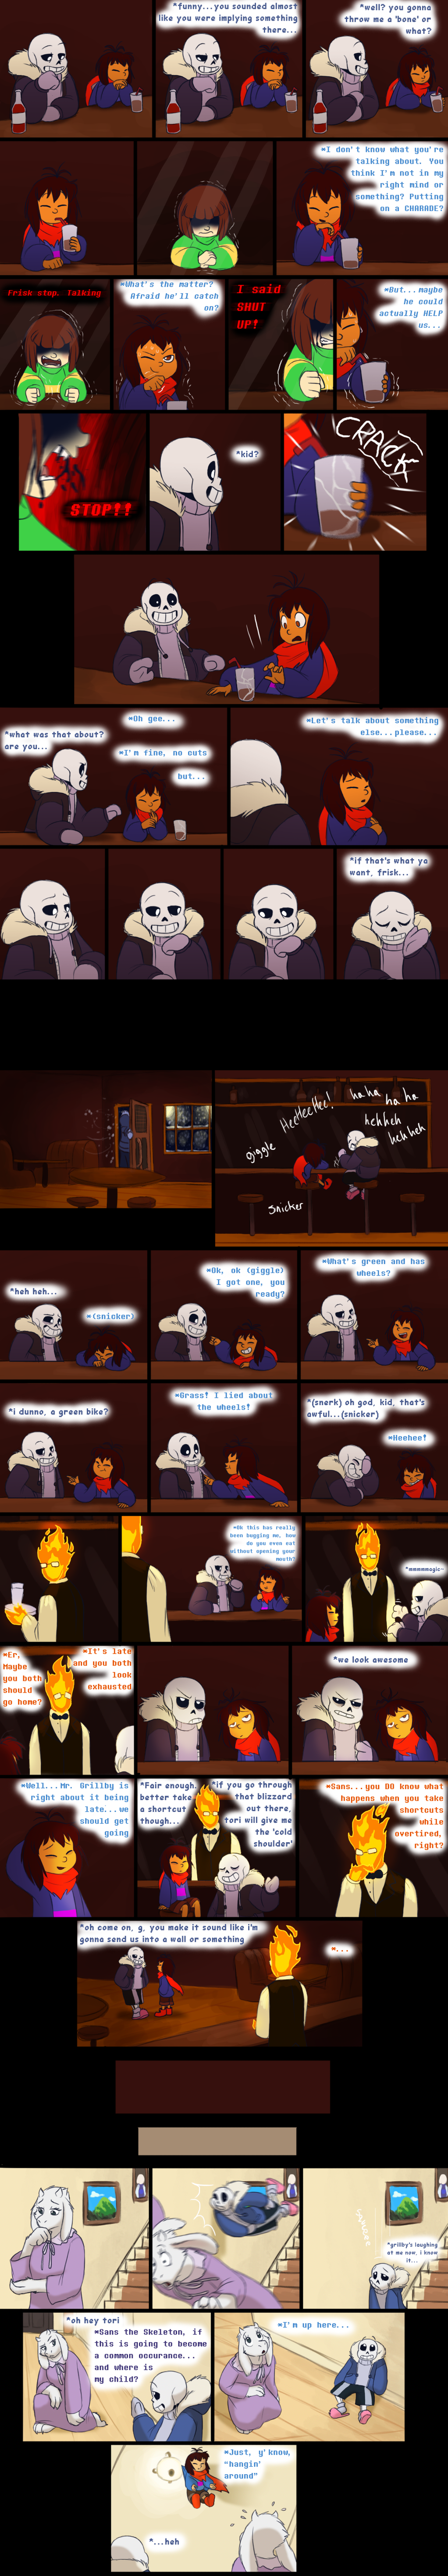 Endertale - Page 13 by TC-96